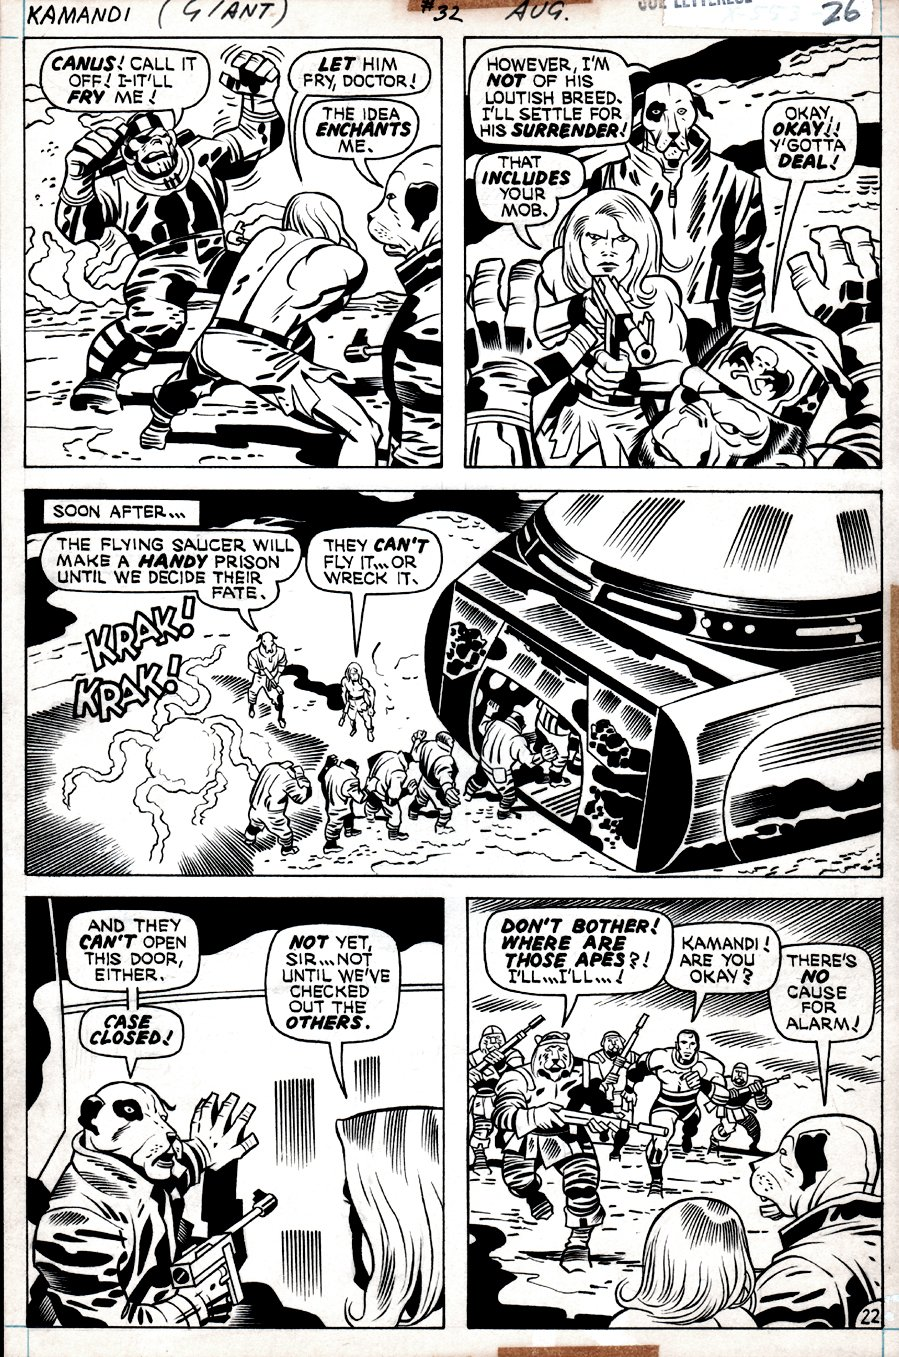 Kamandi #32 p 22  (Kamandi In ALL 5 PANELS, Dr. Canus, Beast-Men, Gorilla Commandos Captured!) 1975